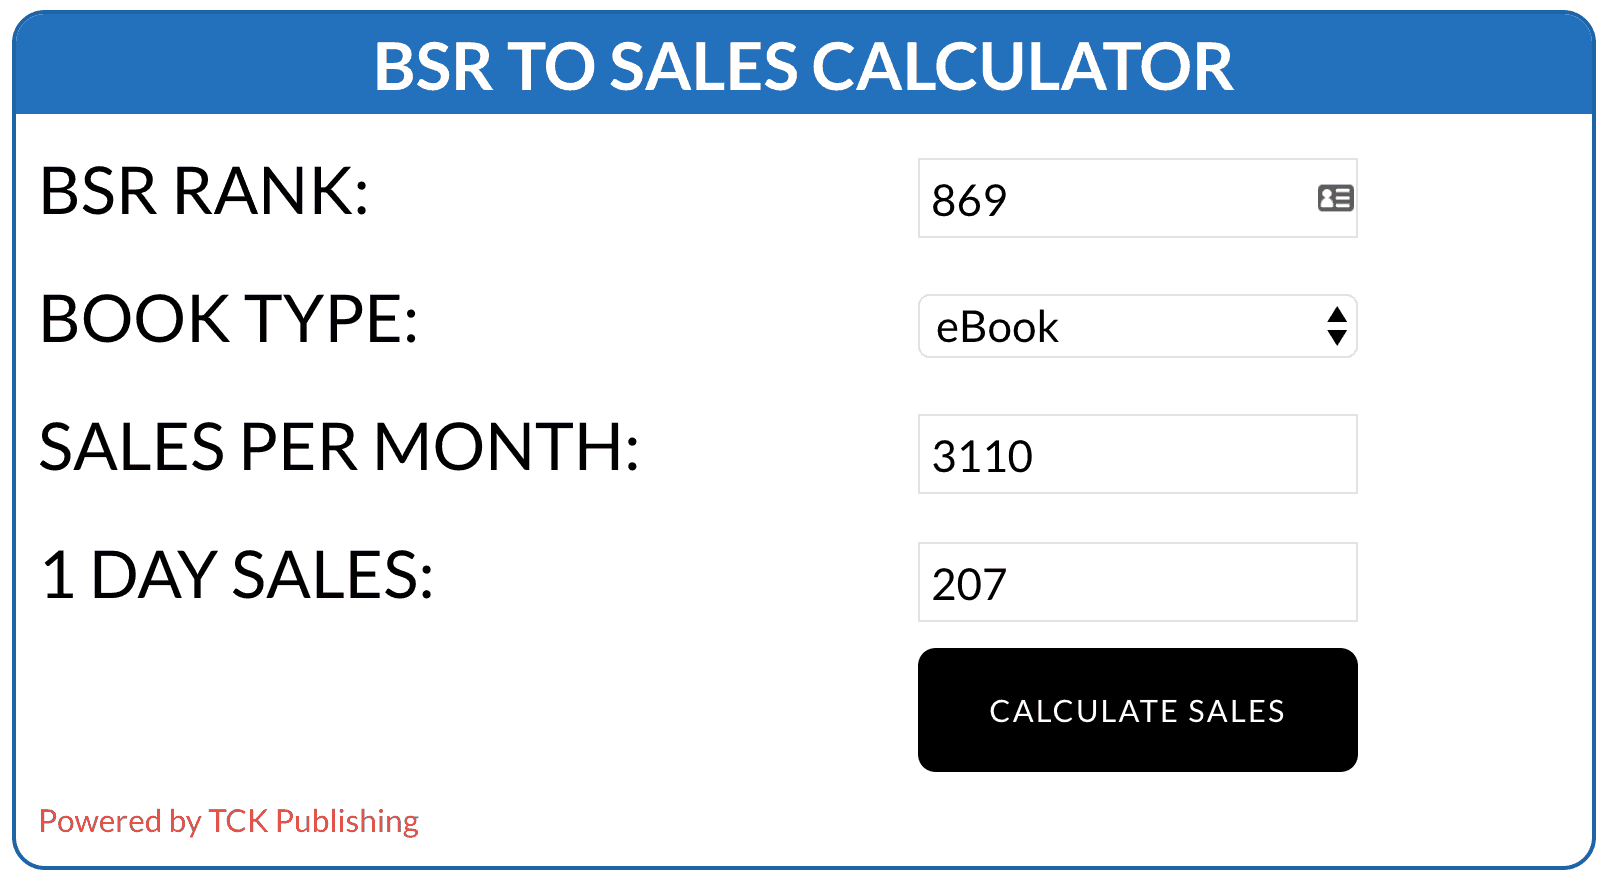 Amazon book sales calculator tool image